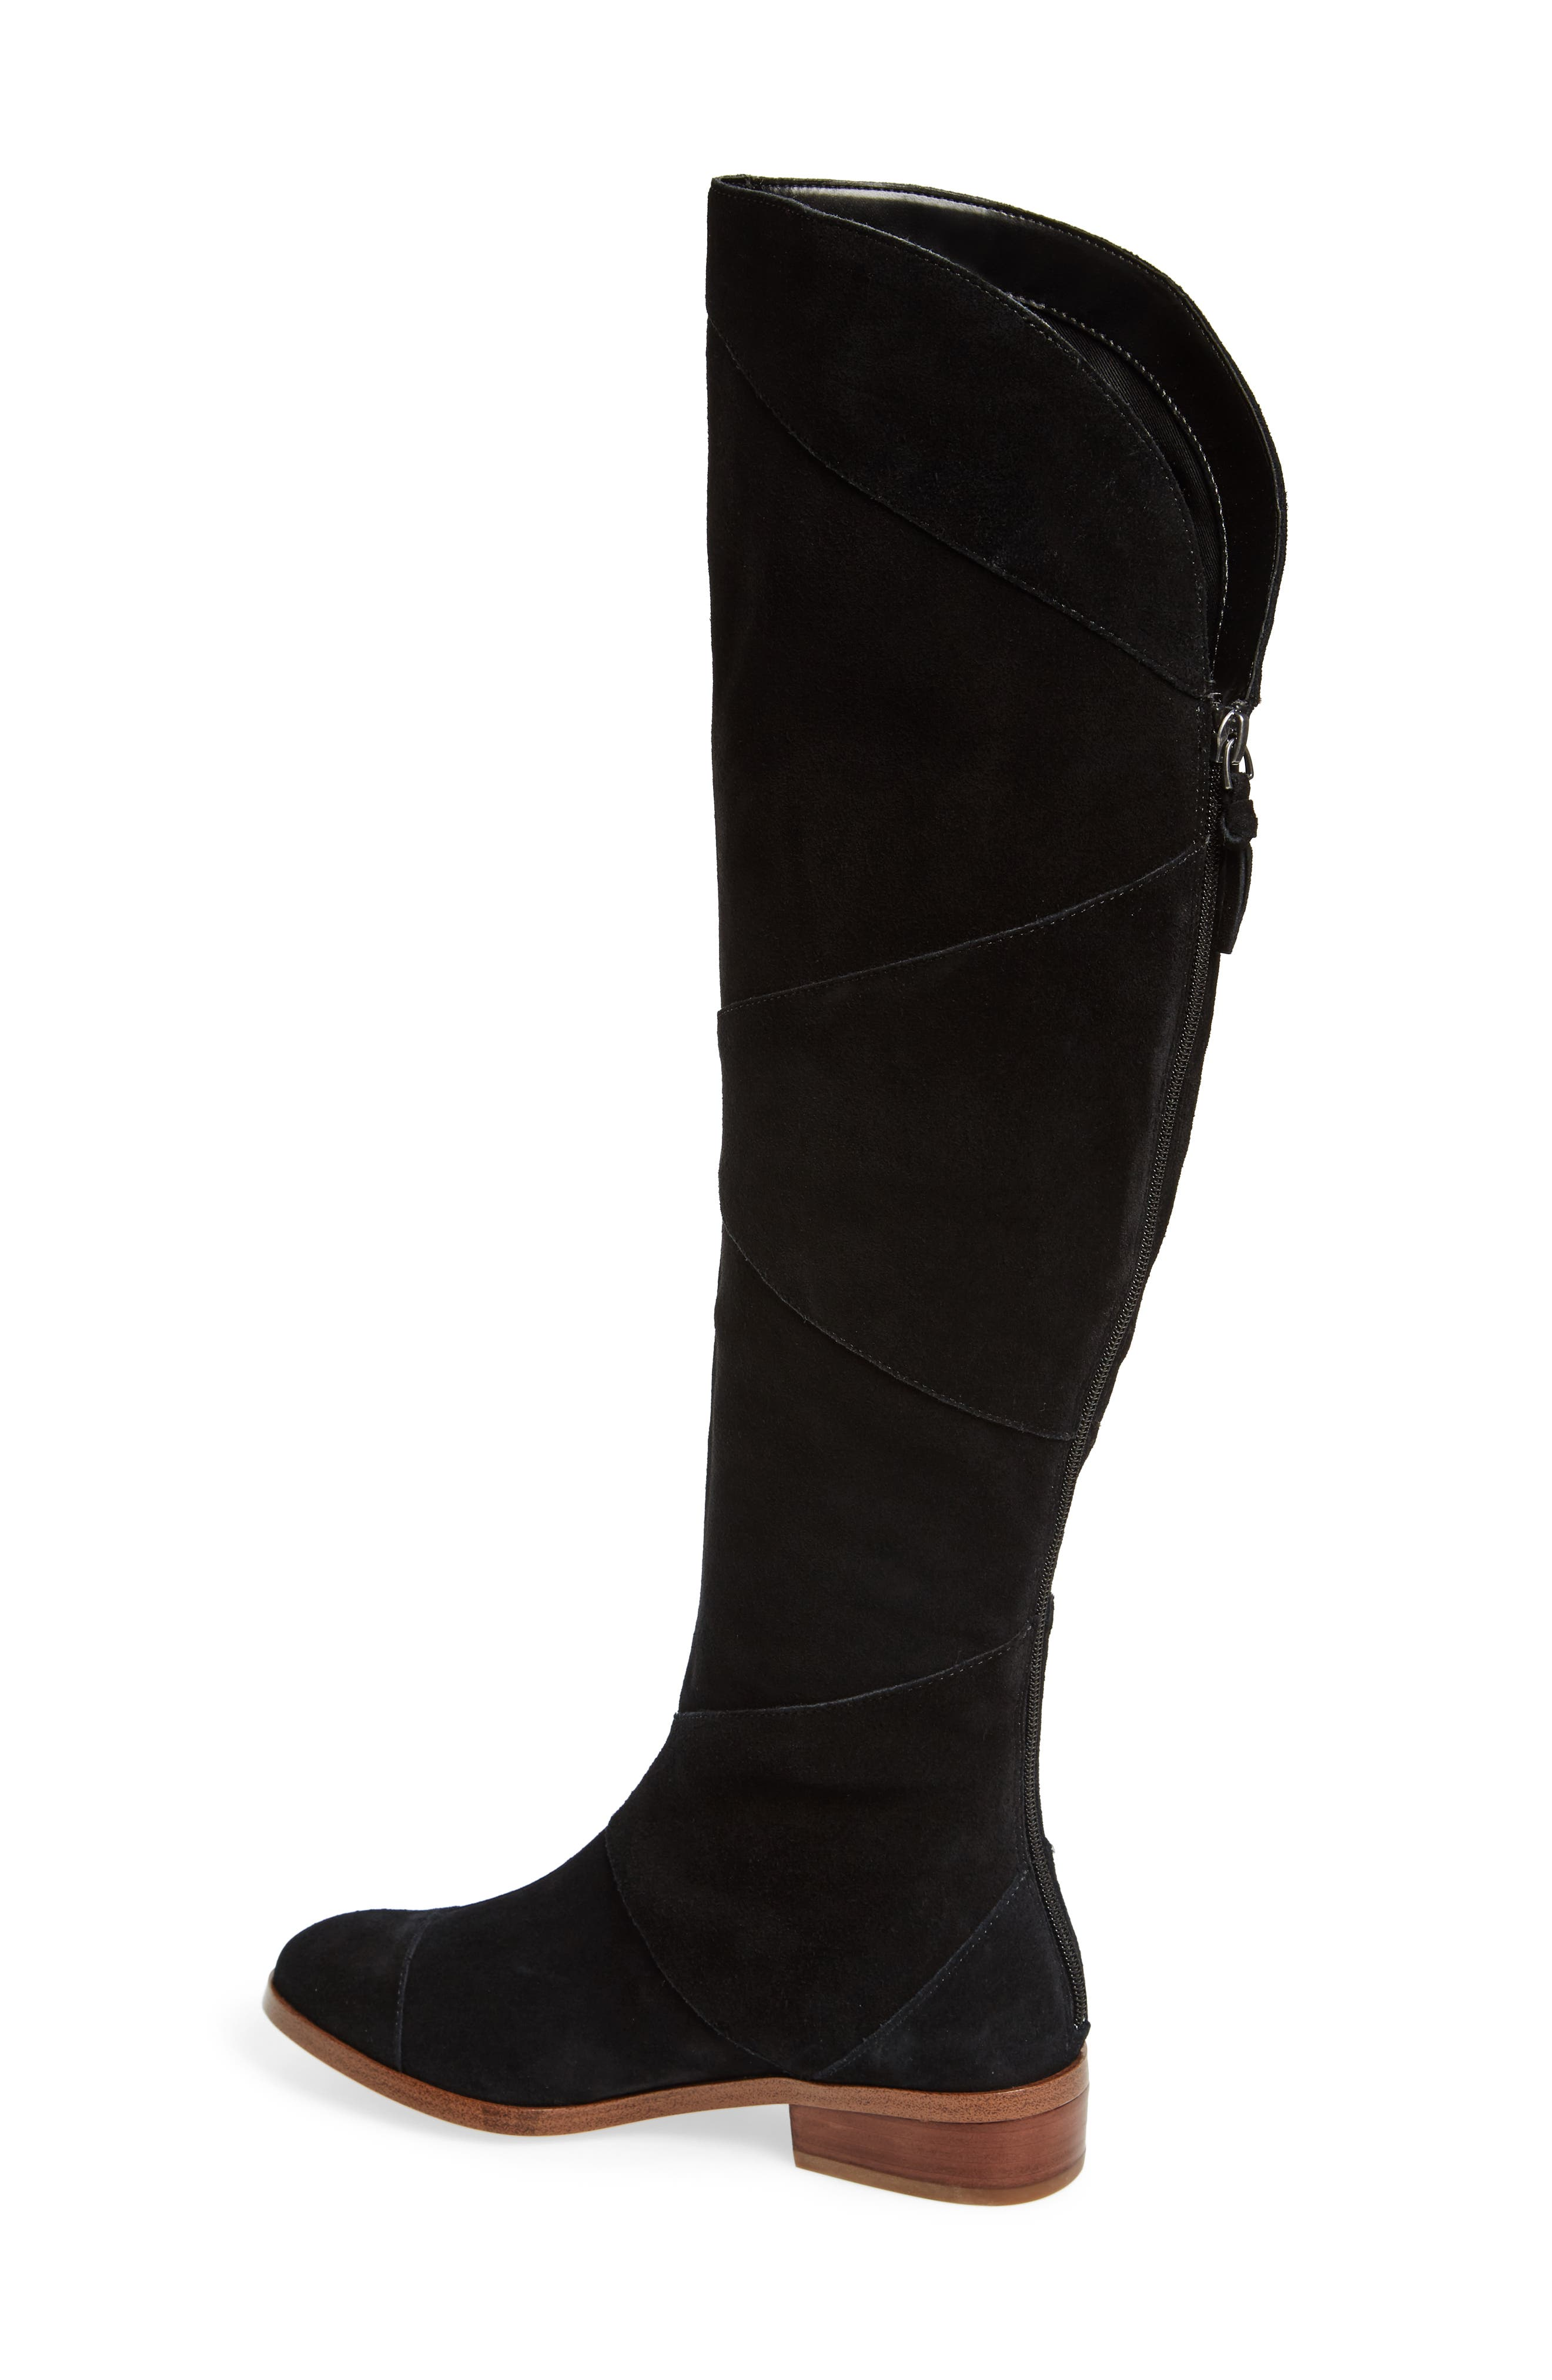 SOLE SOCIETY, Tiff Over the Knee Boot, Alternate thumbnail 2, color, BLACK